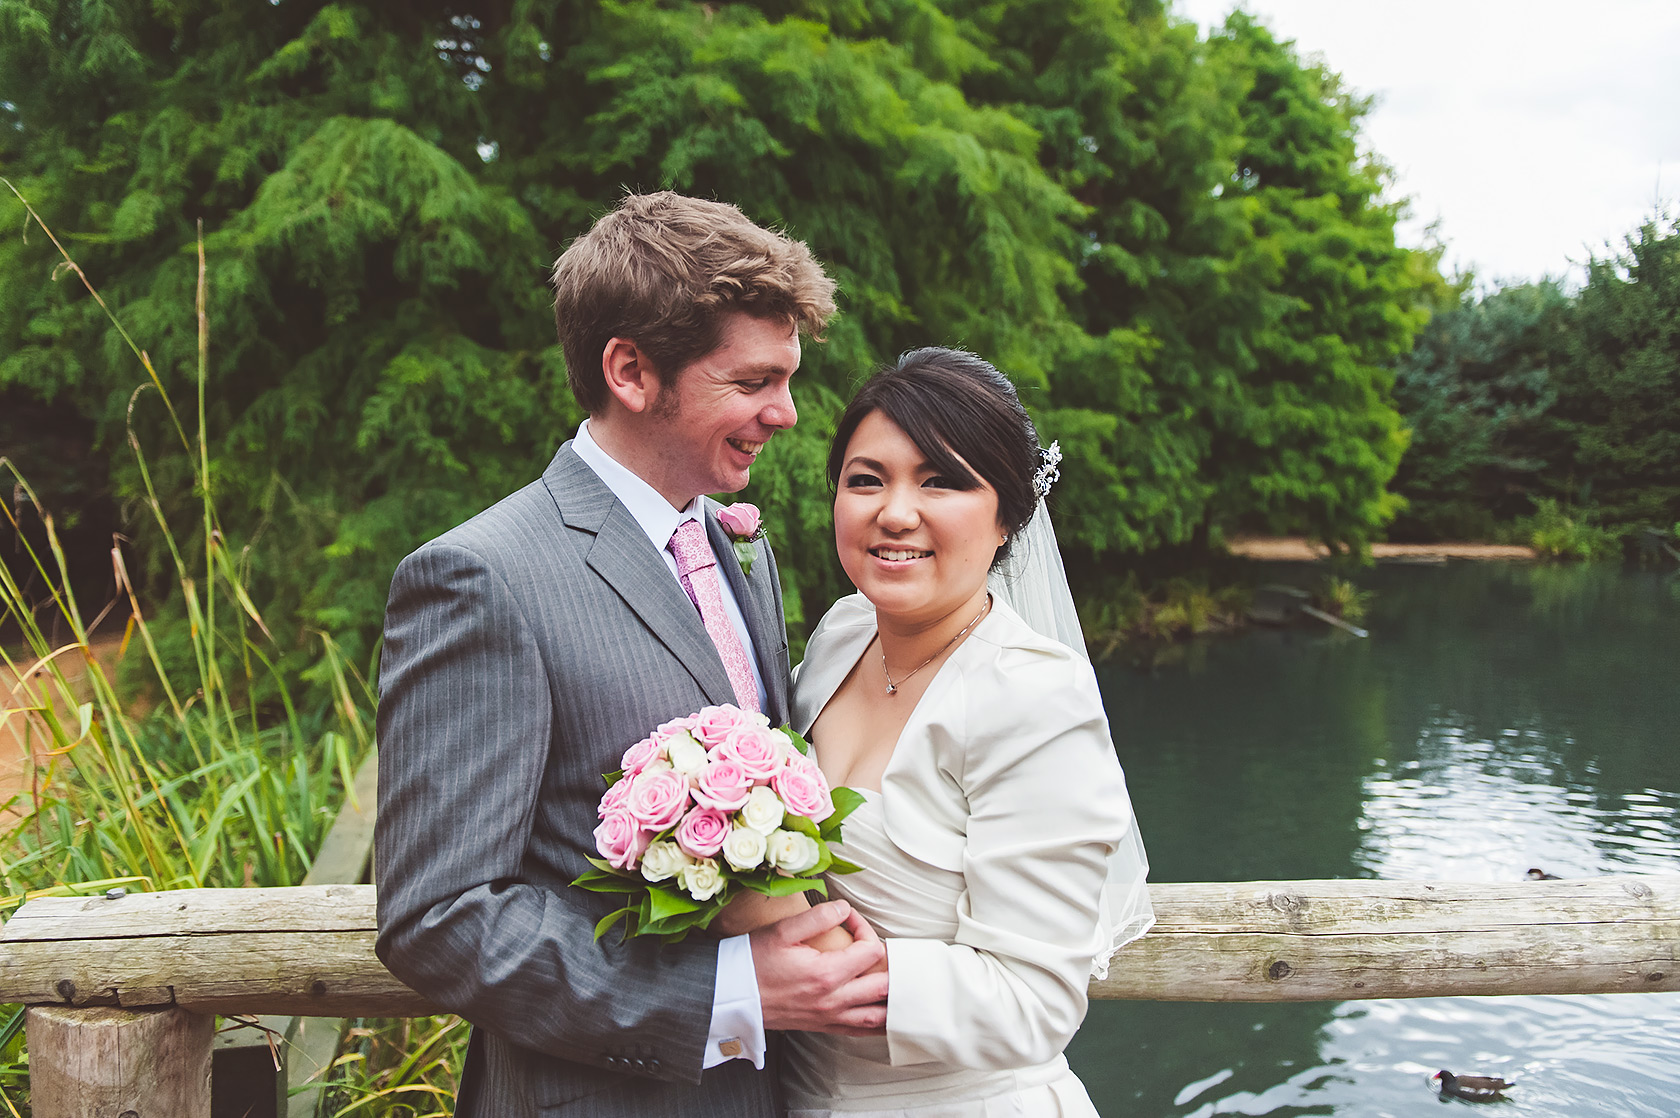 Ilin_and_Simon_at_the_london_wetlands_centre